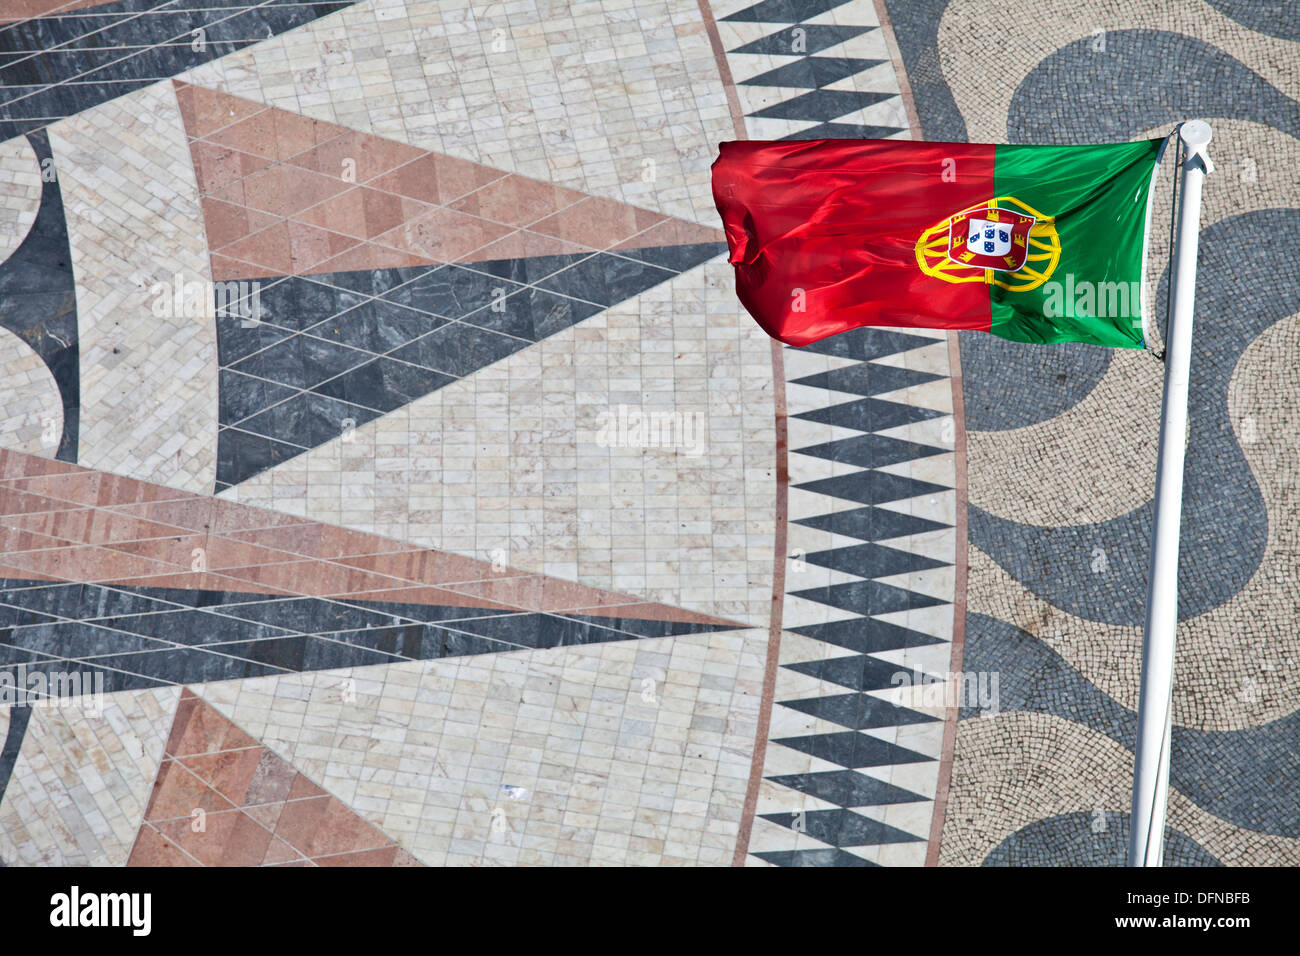 Flag of Portugal and a giant world map at the foot of the Monument to the Discoveries, Padrao dos Descobrimentos, Belem, - Stock Image